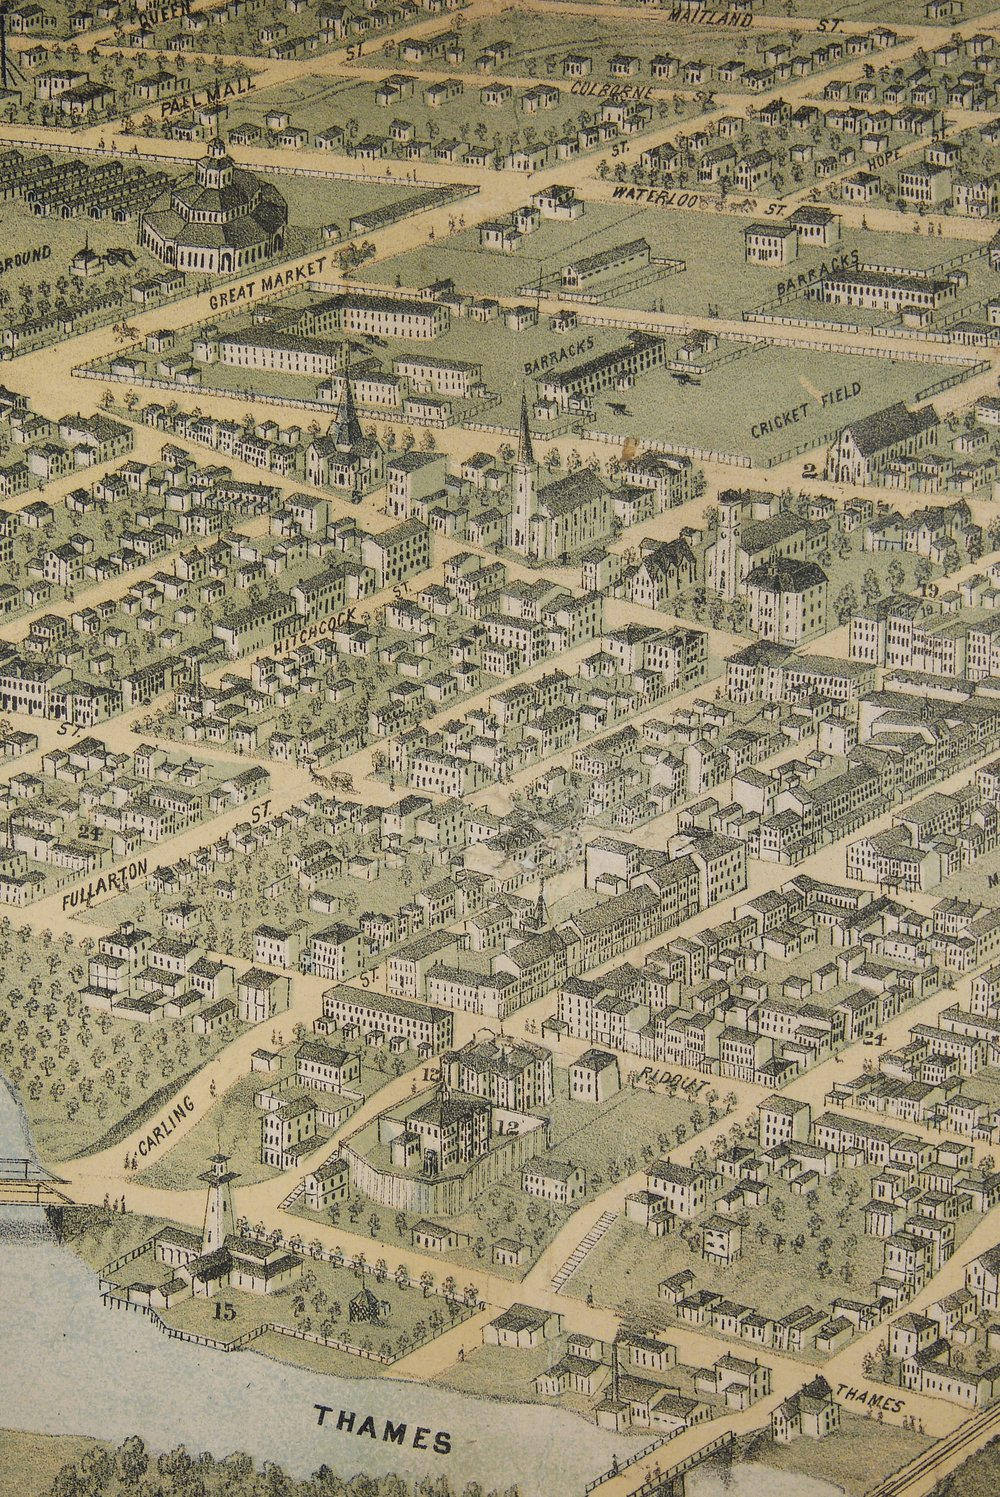 Detail of the 1872 map showing streets of London, Ontario, and the Military Garrison in what is now Victoria Park.